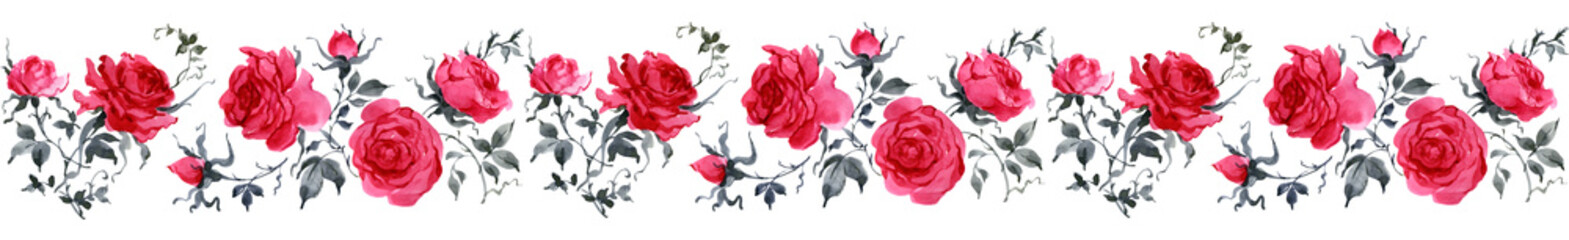 Watercolor Roses seamless border virginia